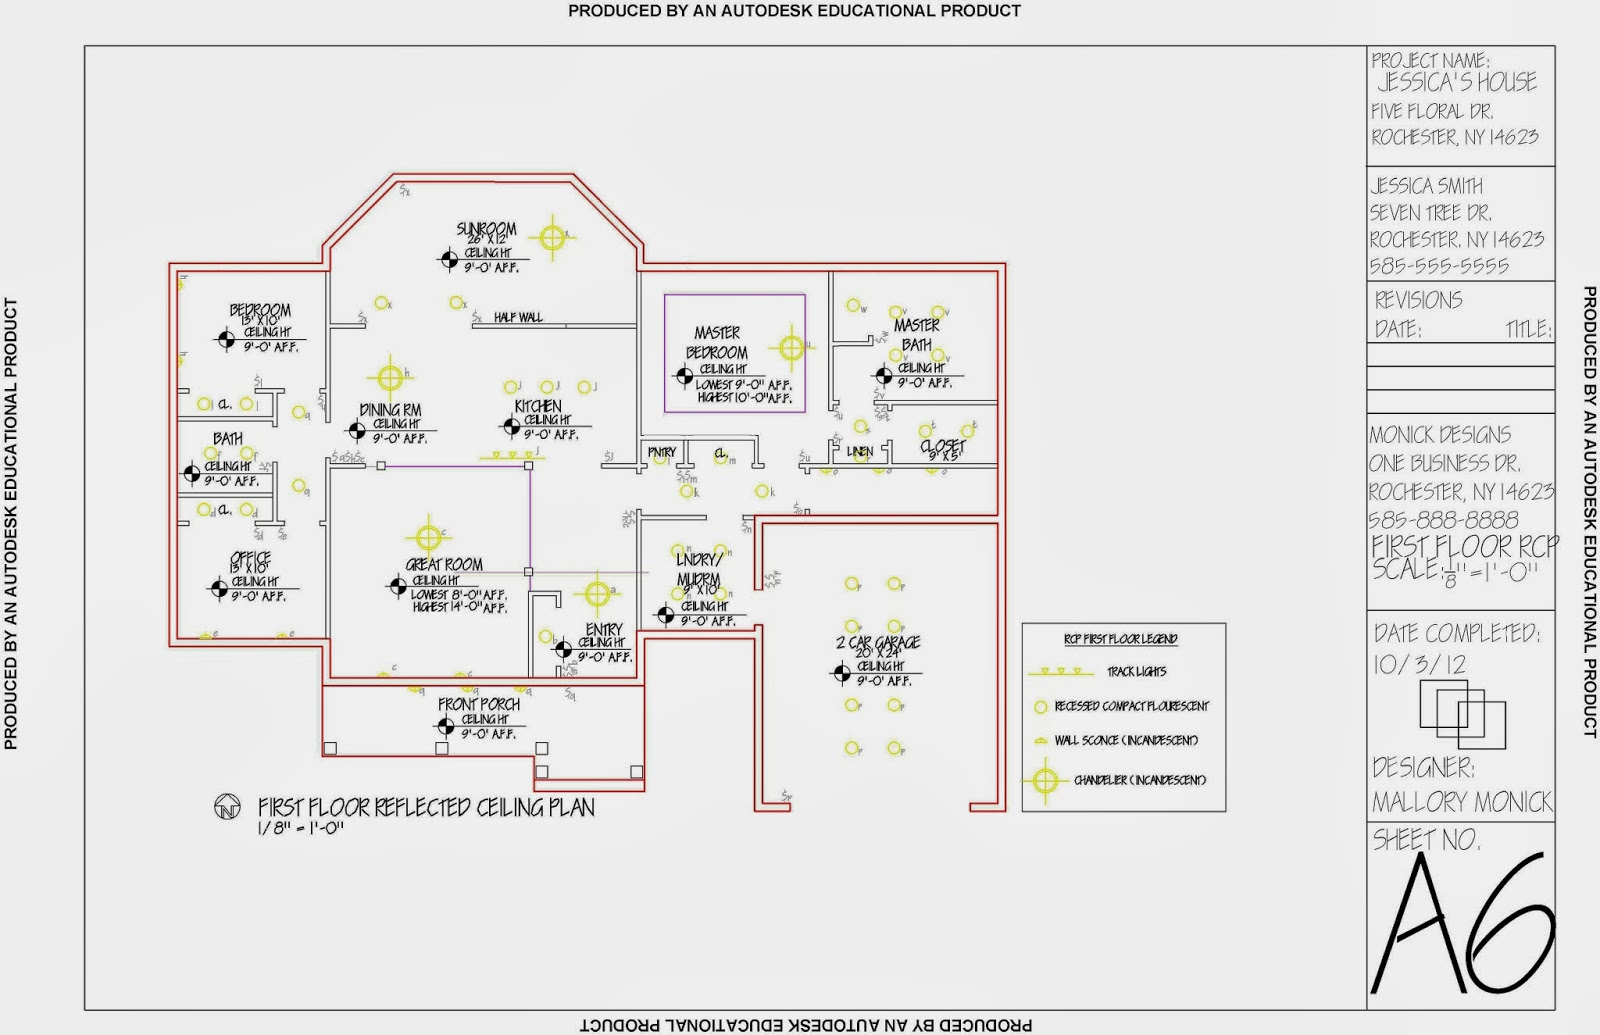 1jz Gte Wiring Diagram 2002 Chevy Avalanche Radio 110 Breaker Box Diagram, 110, Get Free Image About